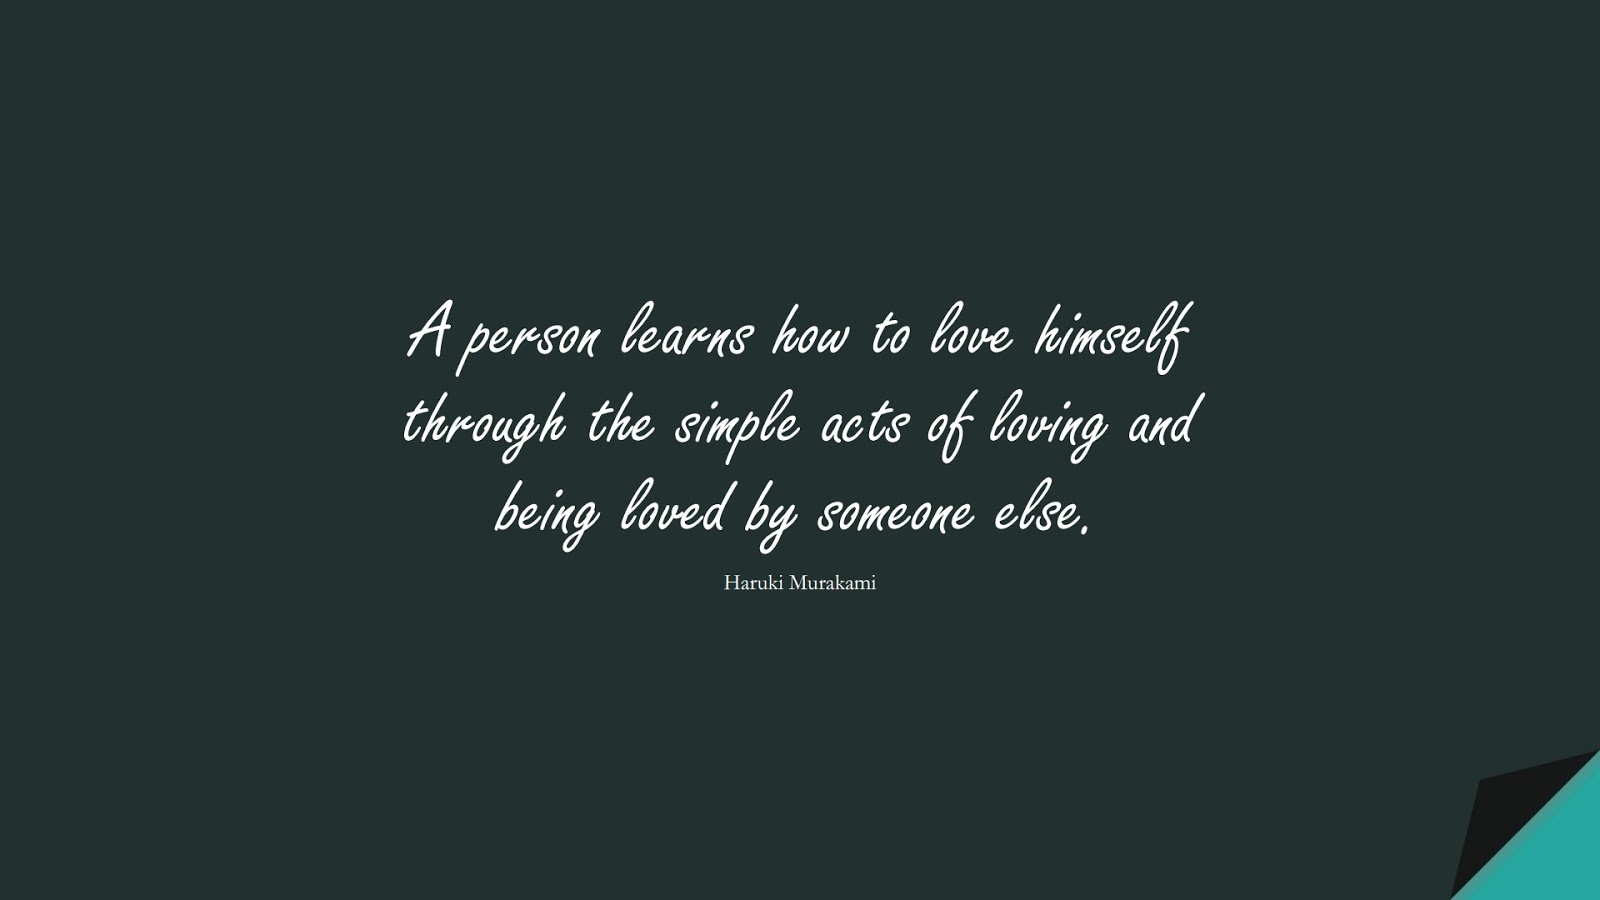 A person learns how to love himself through the simple acts of loving and being loved by someone else. (Haruki Murakami);  #LoveYourselfQuotes